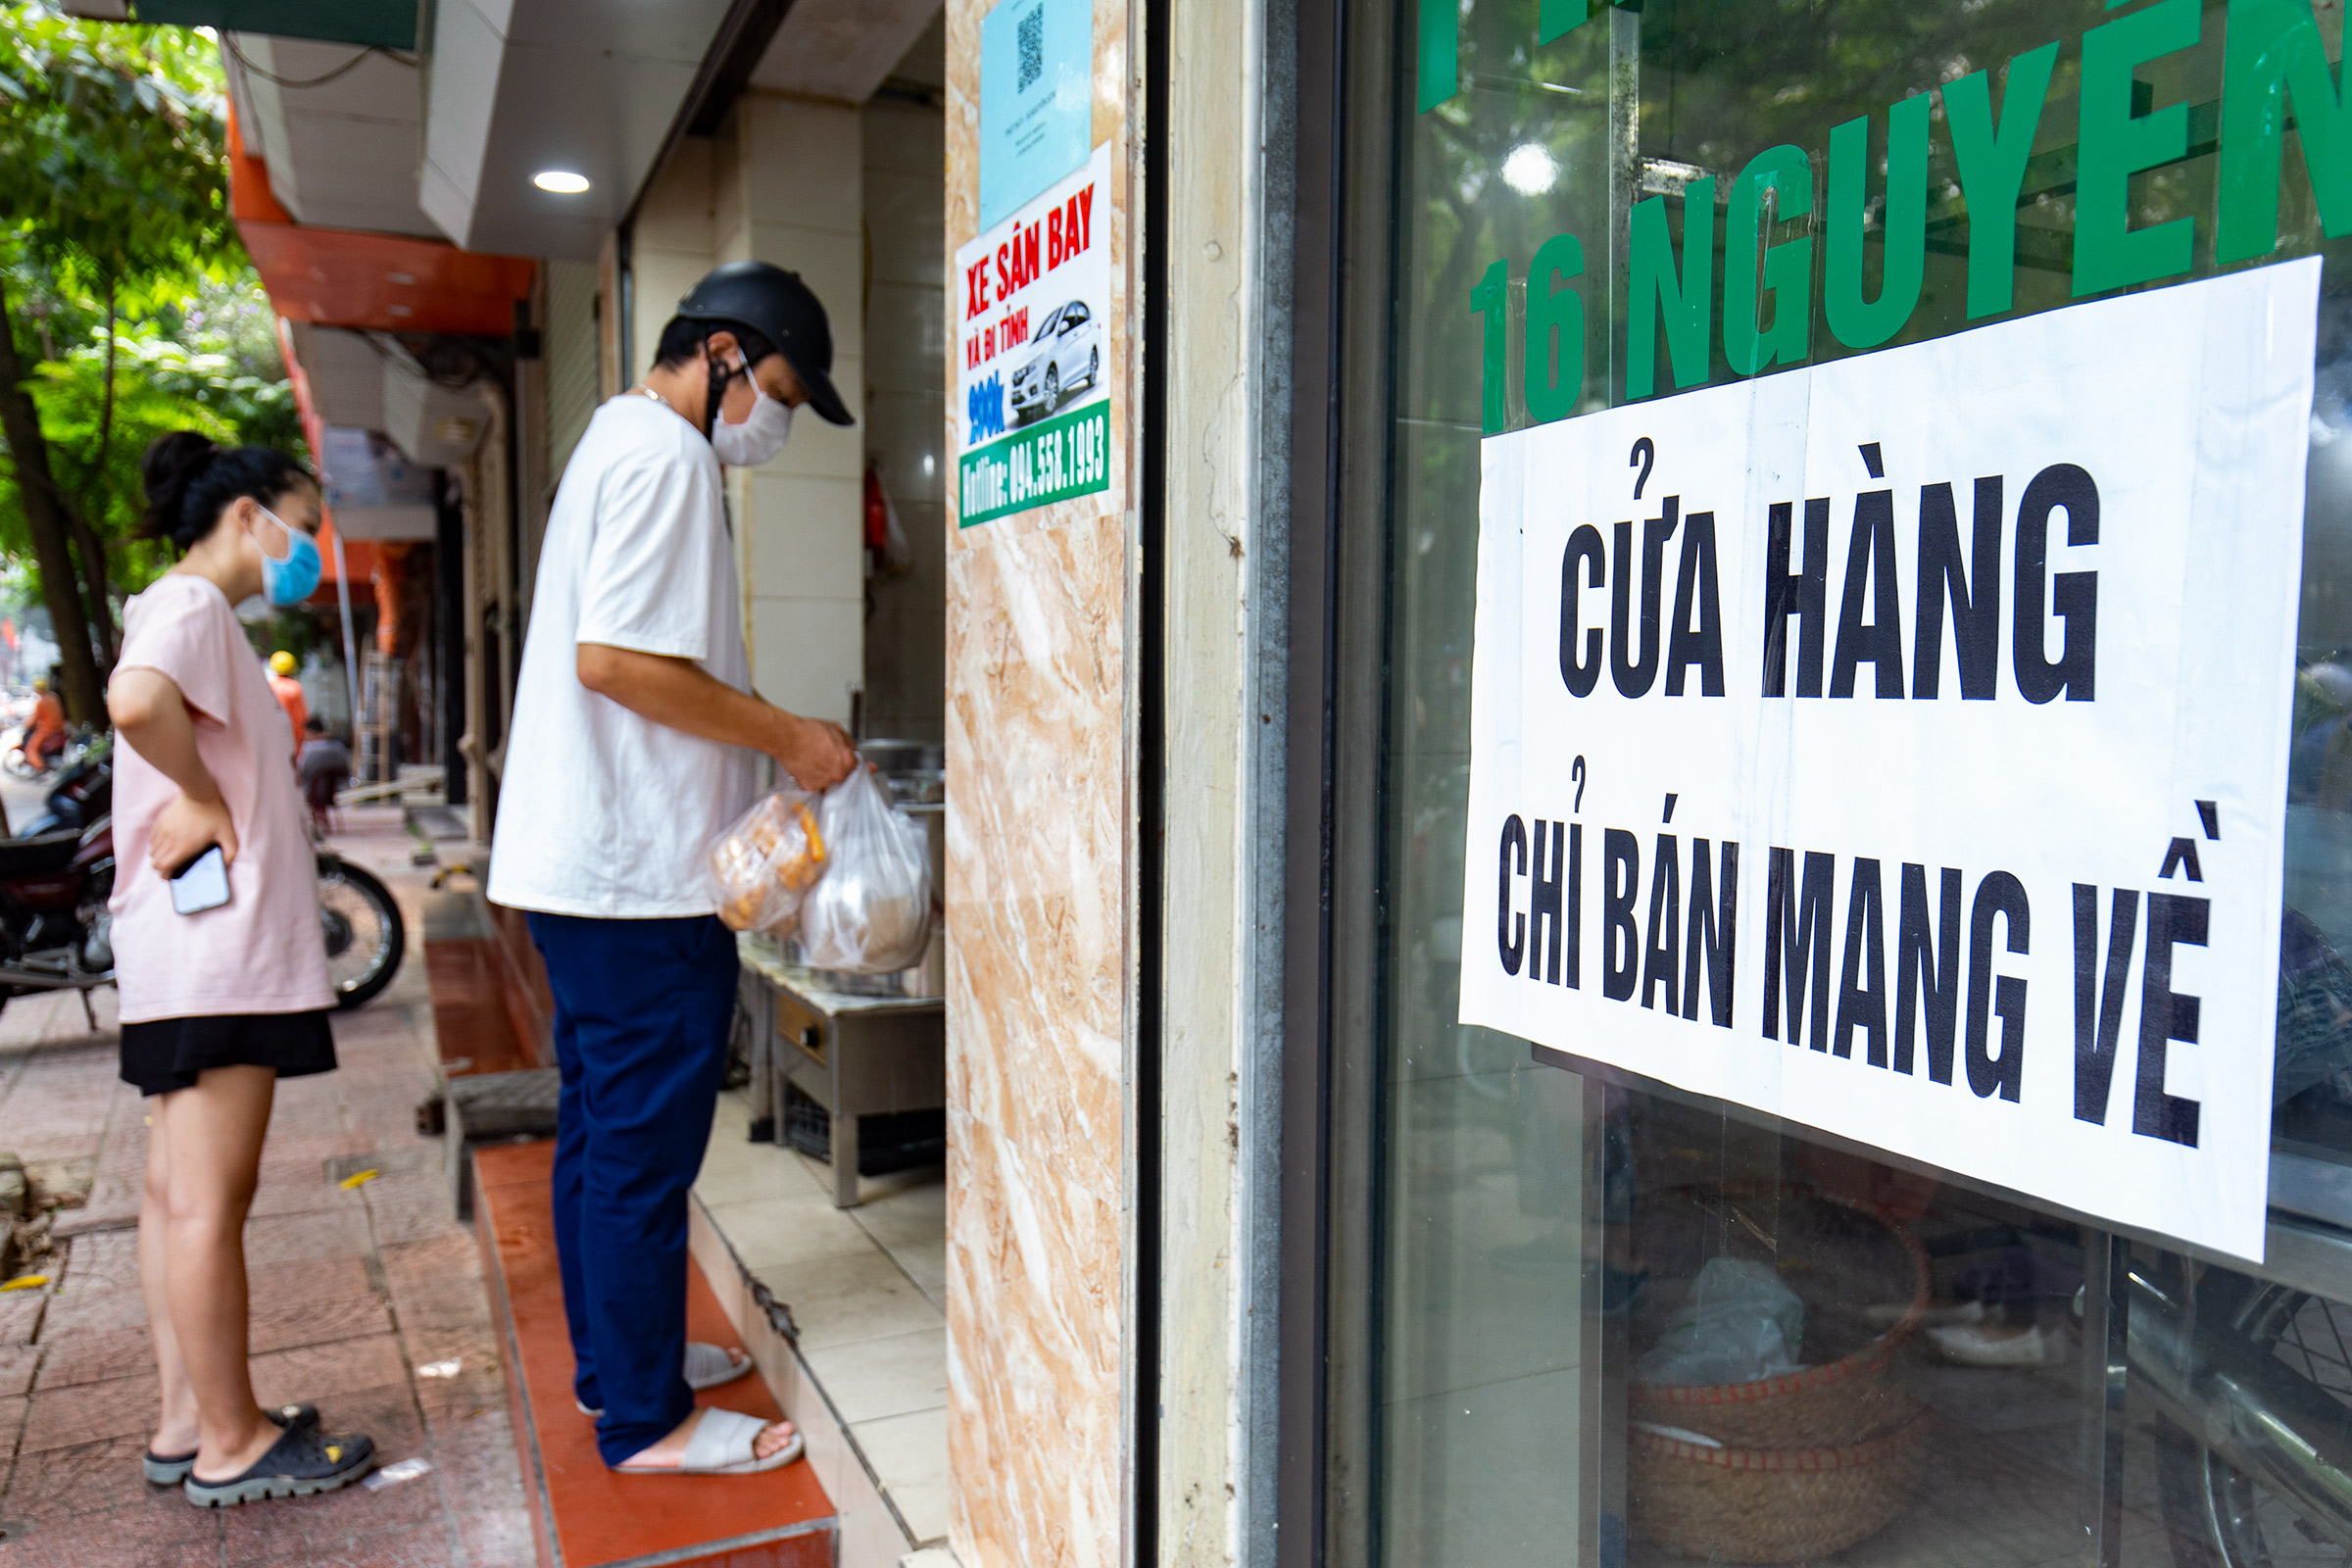 Starting September 9 a few wards in Long Bien District have allowed food and beverage sellers to open after two months though only for takeout.